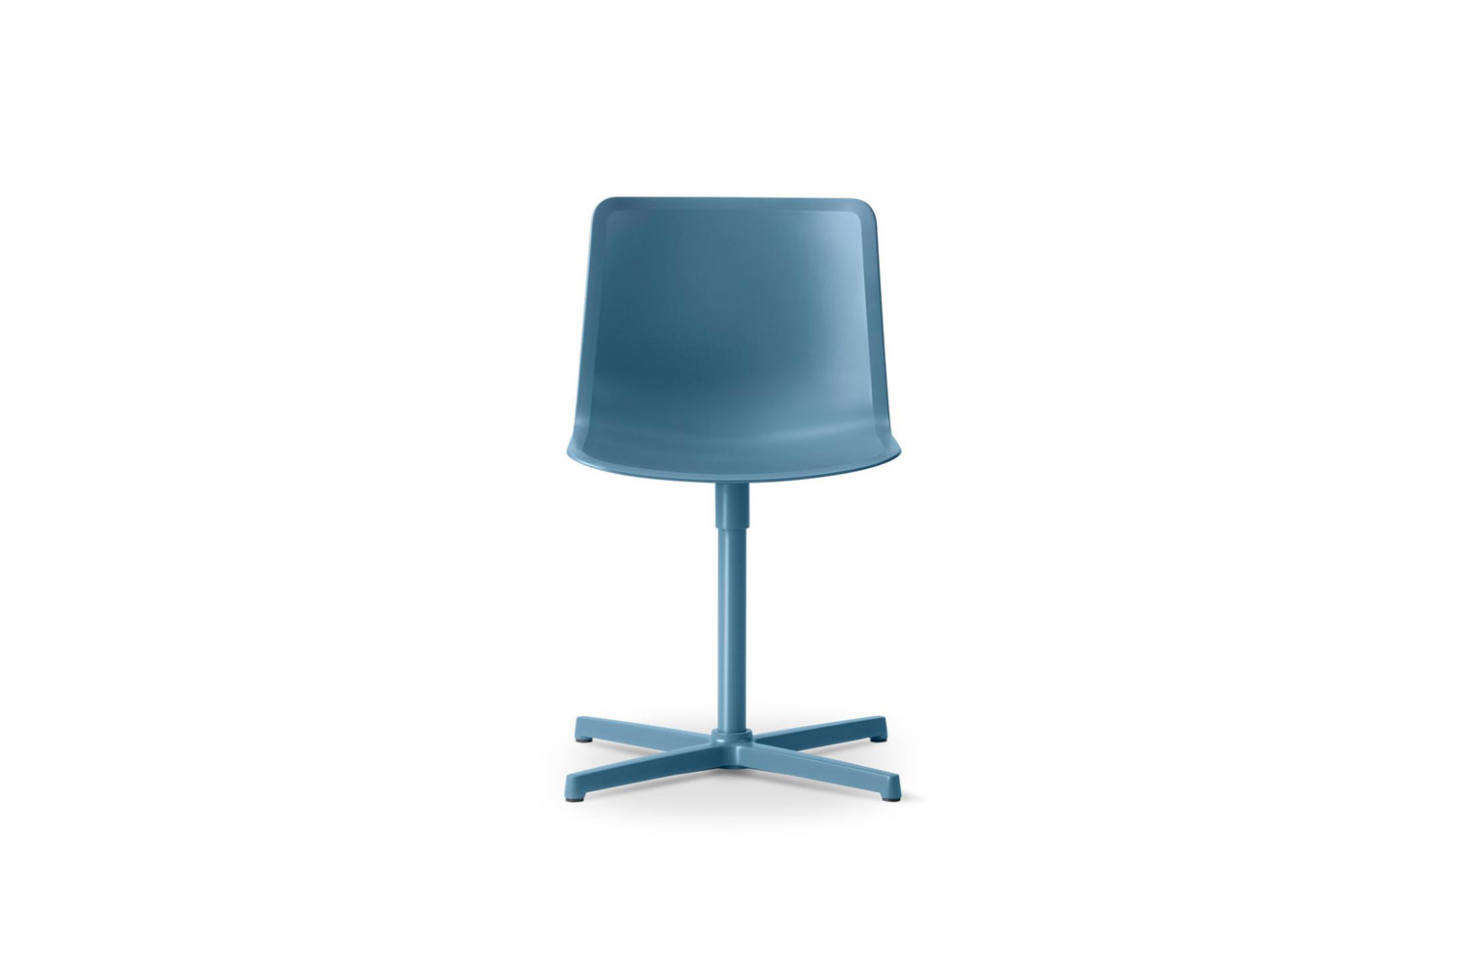 The Welling Ludvik Pato Veneer Swivel Chair Is Available In A Range Of Color Options